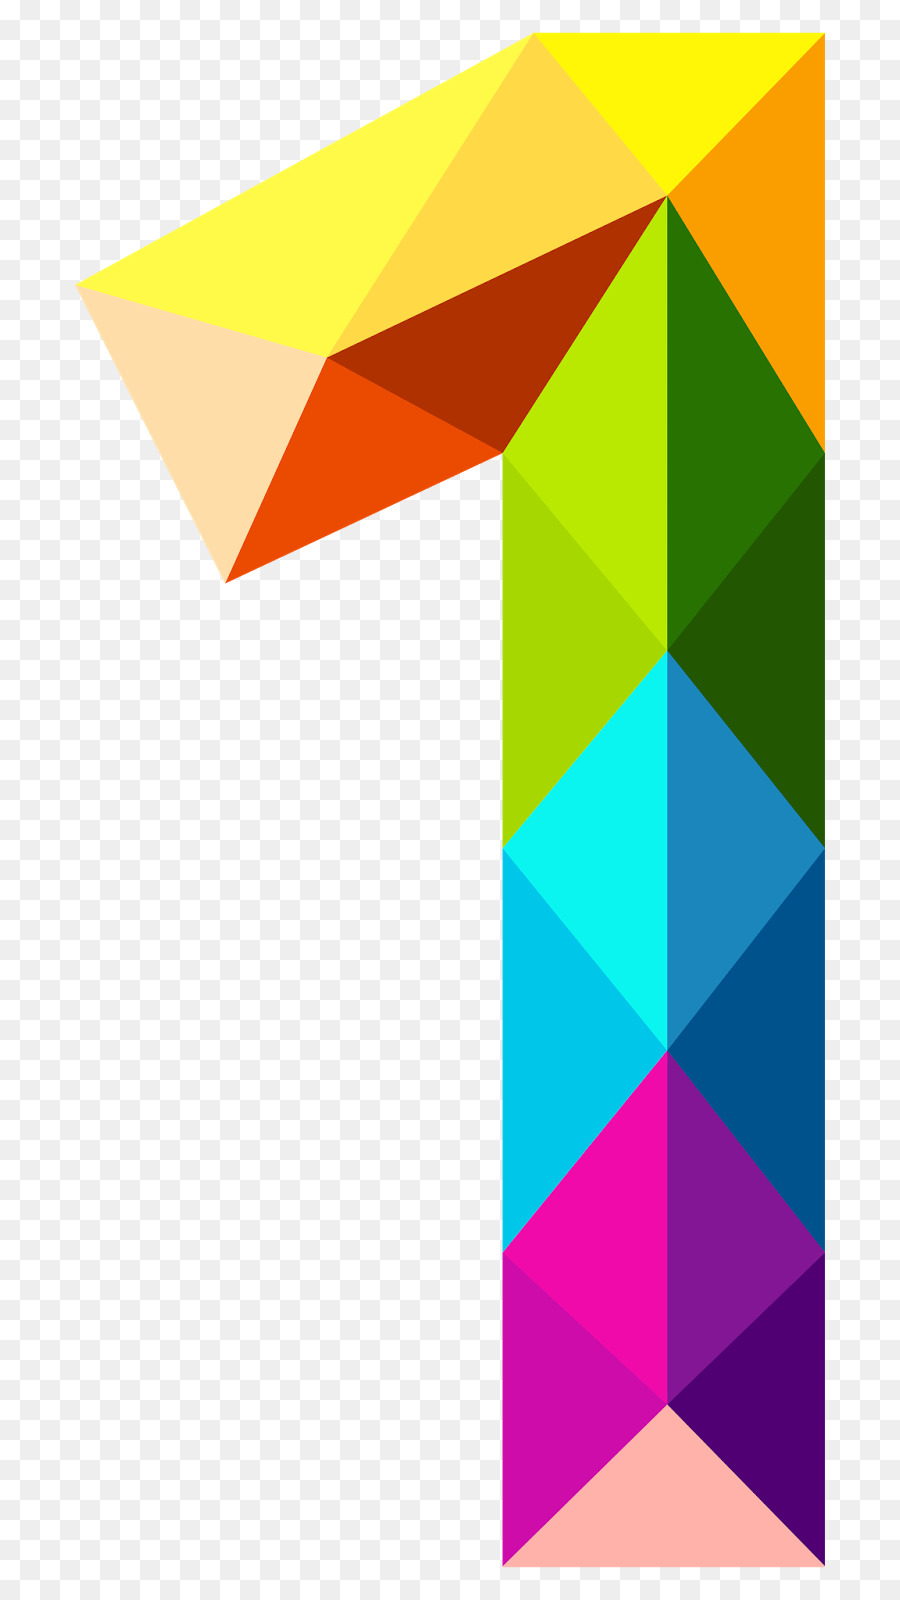 Number triangle clip art. 1 clipart numeral